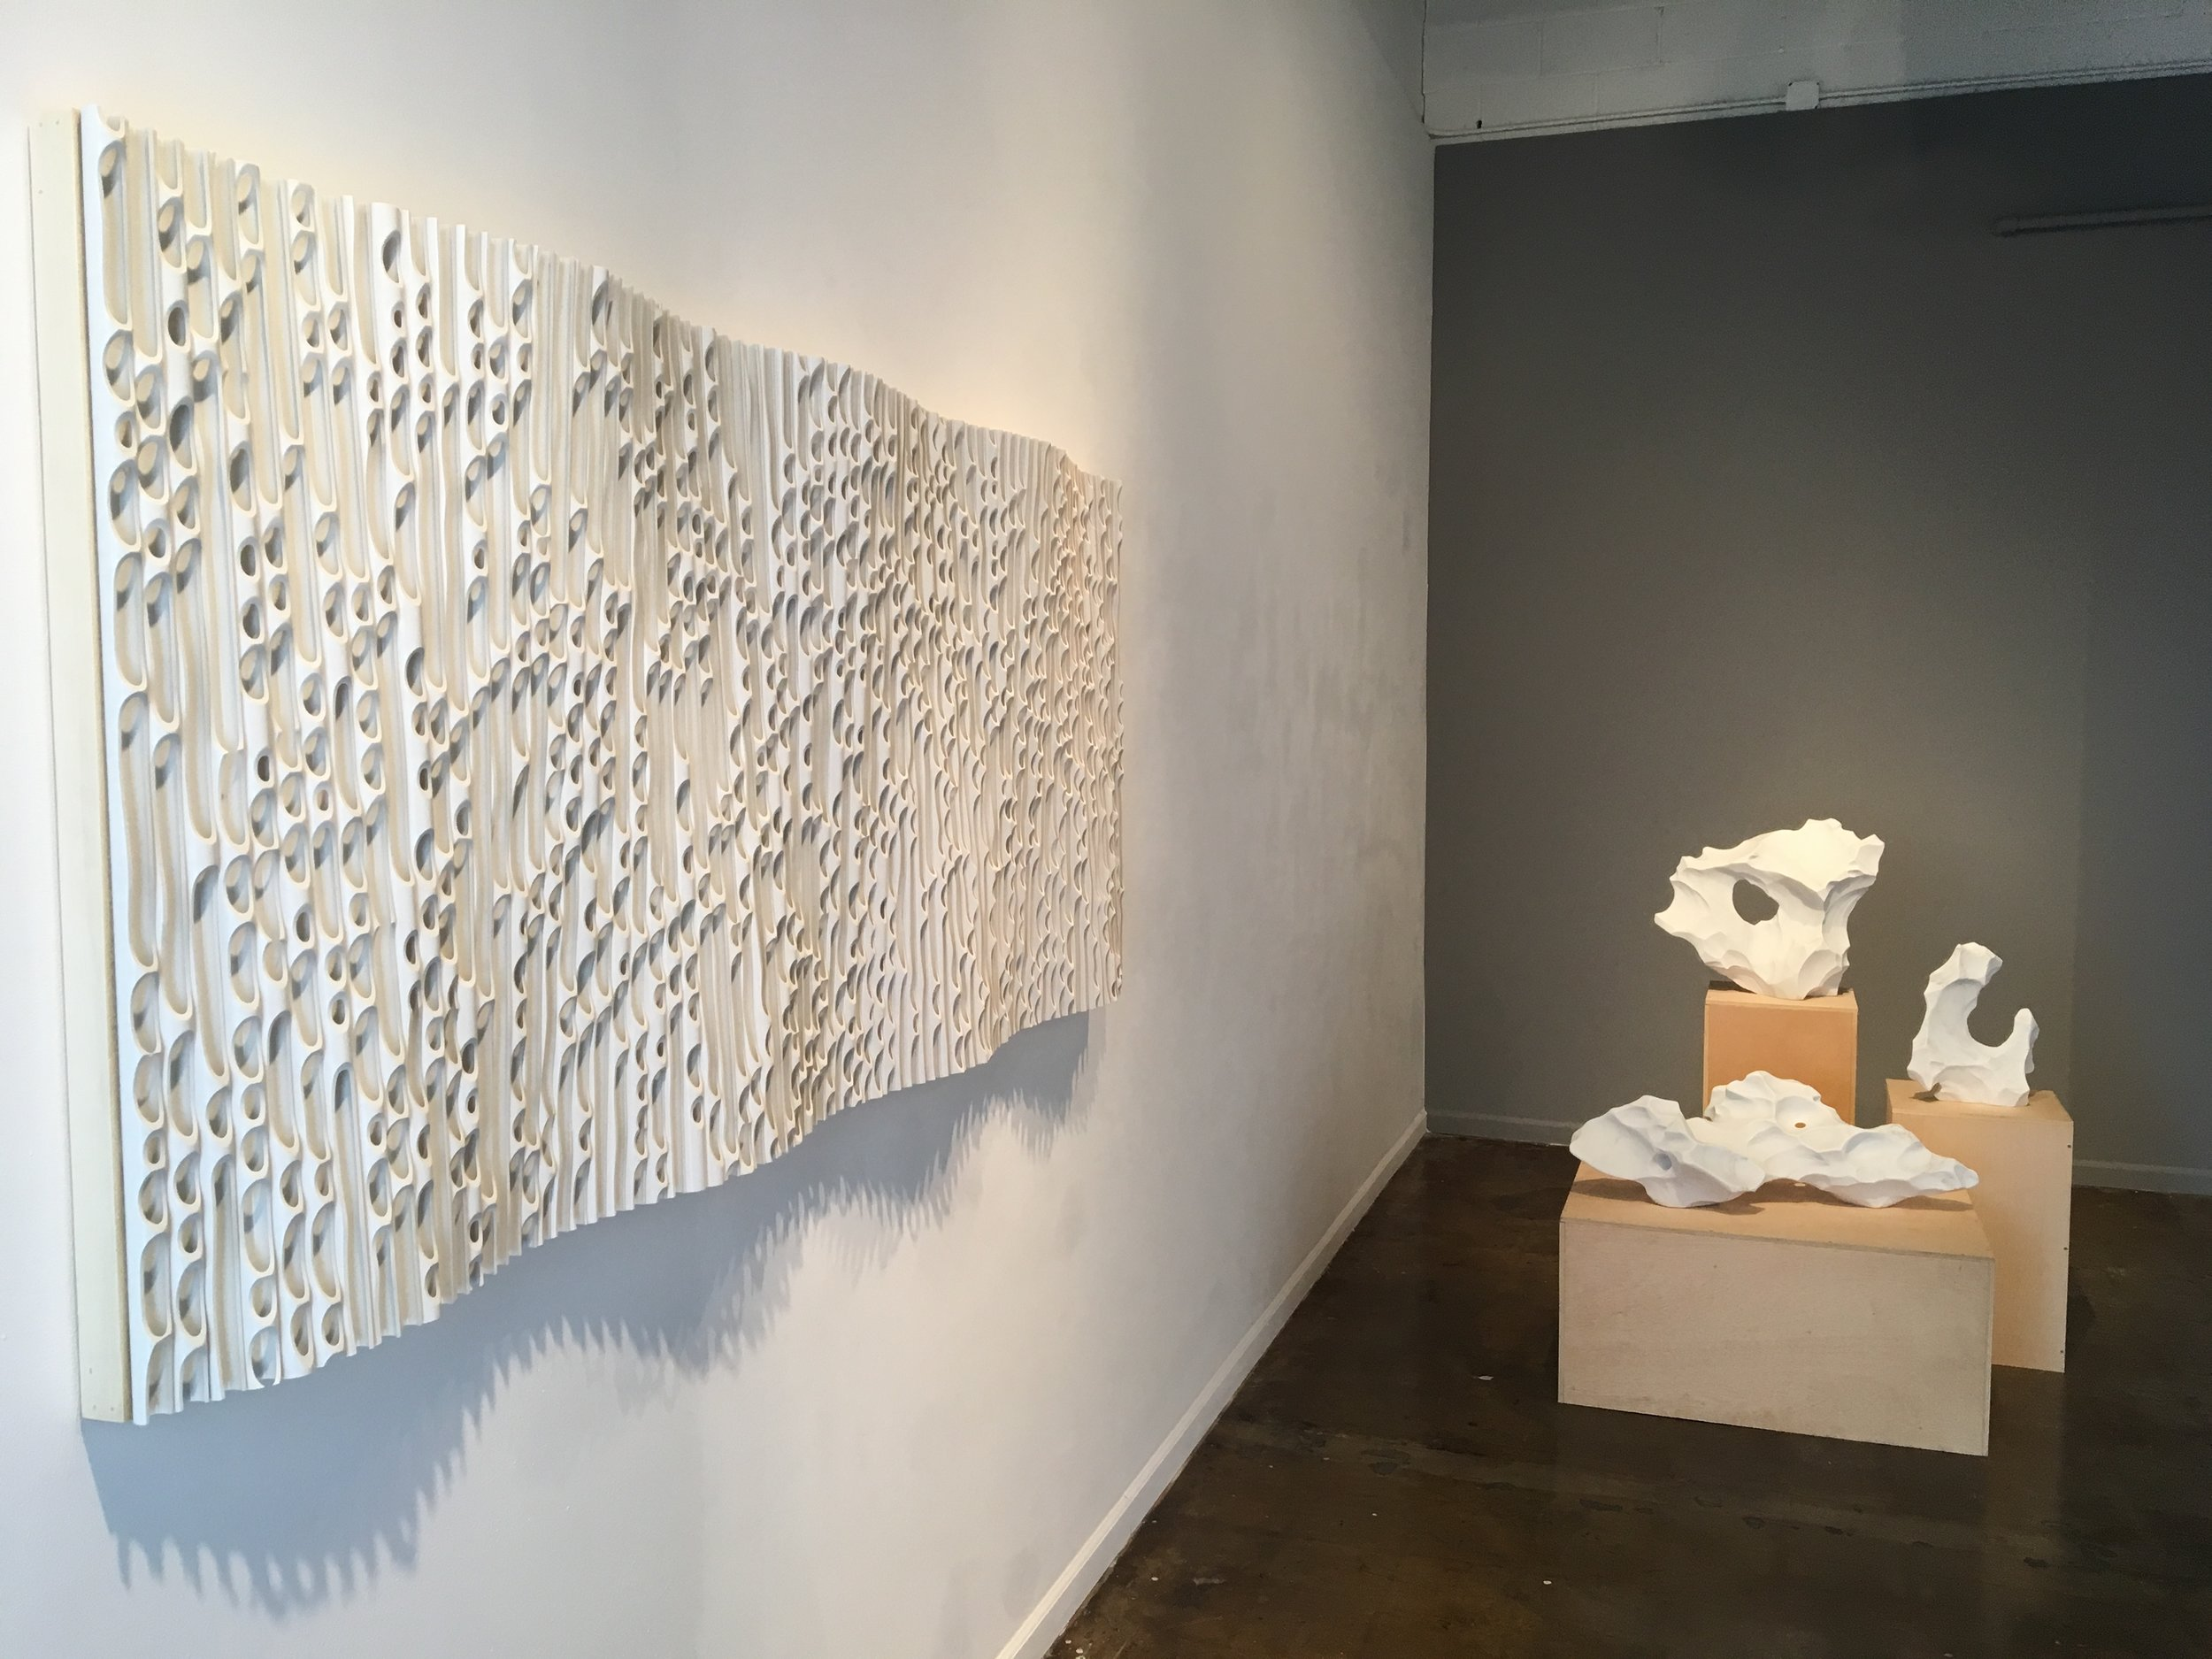 A new piece from the Wave series and the latest marble sculptures from the Immutable Ice series.